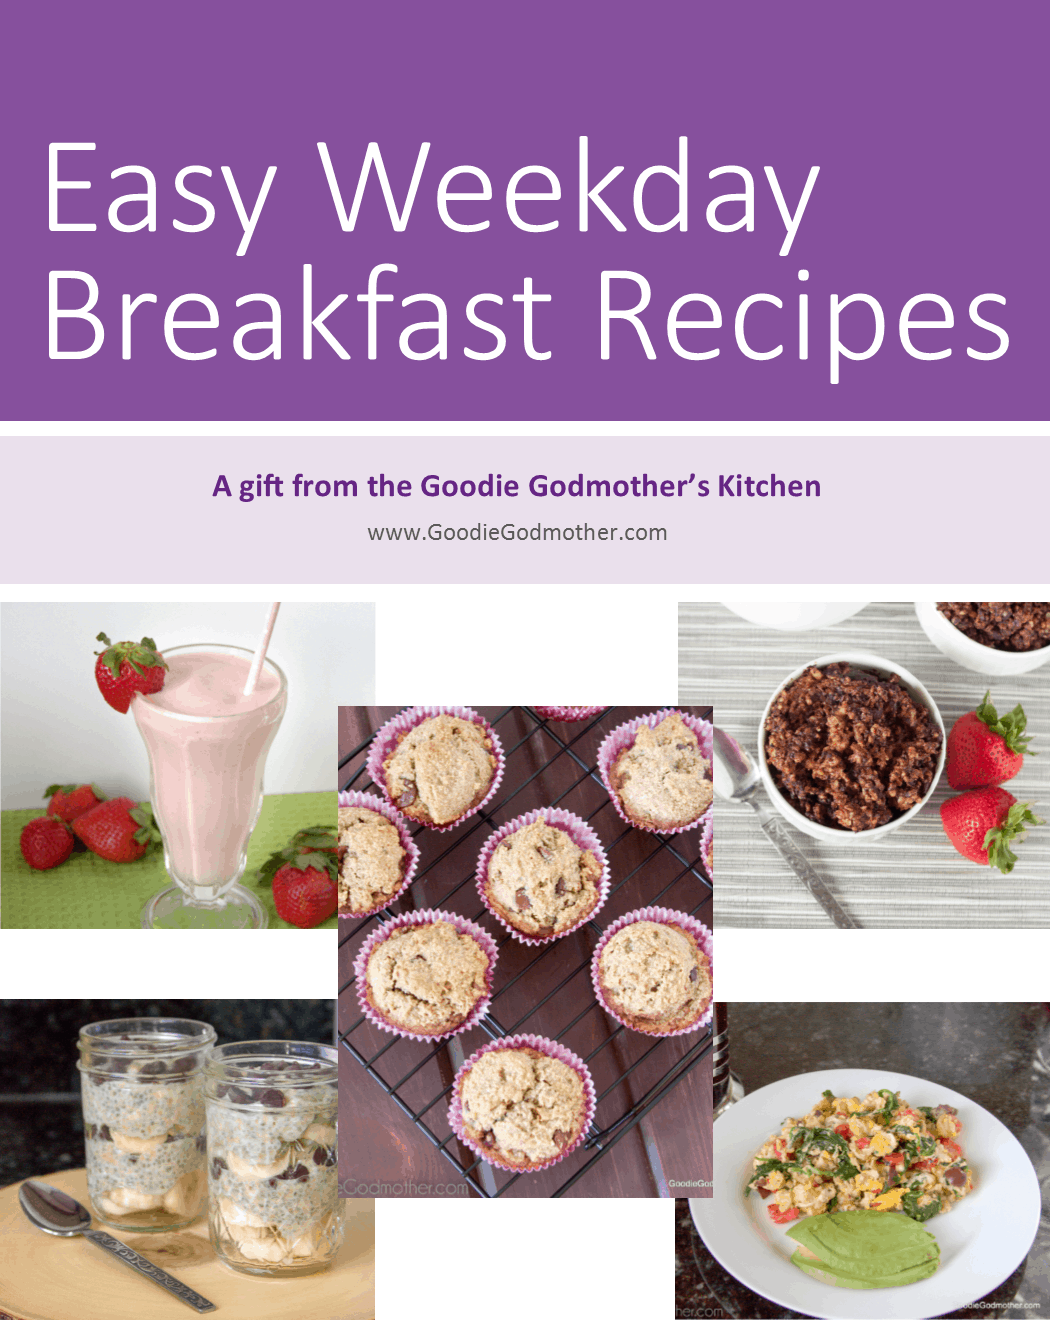 Free Cookbook for Goodie Godmother email subscribers